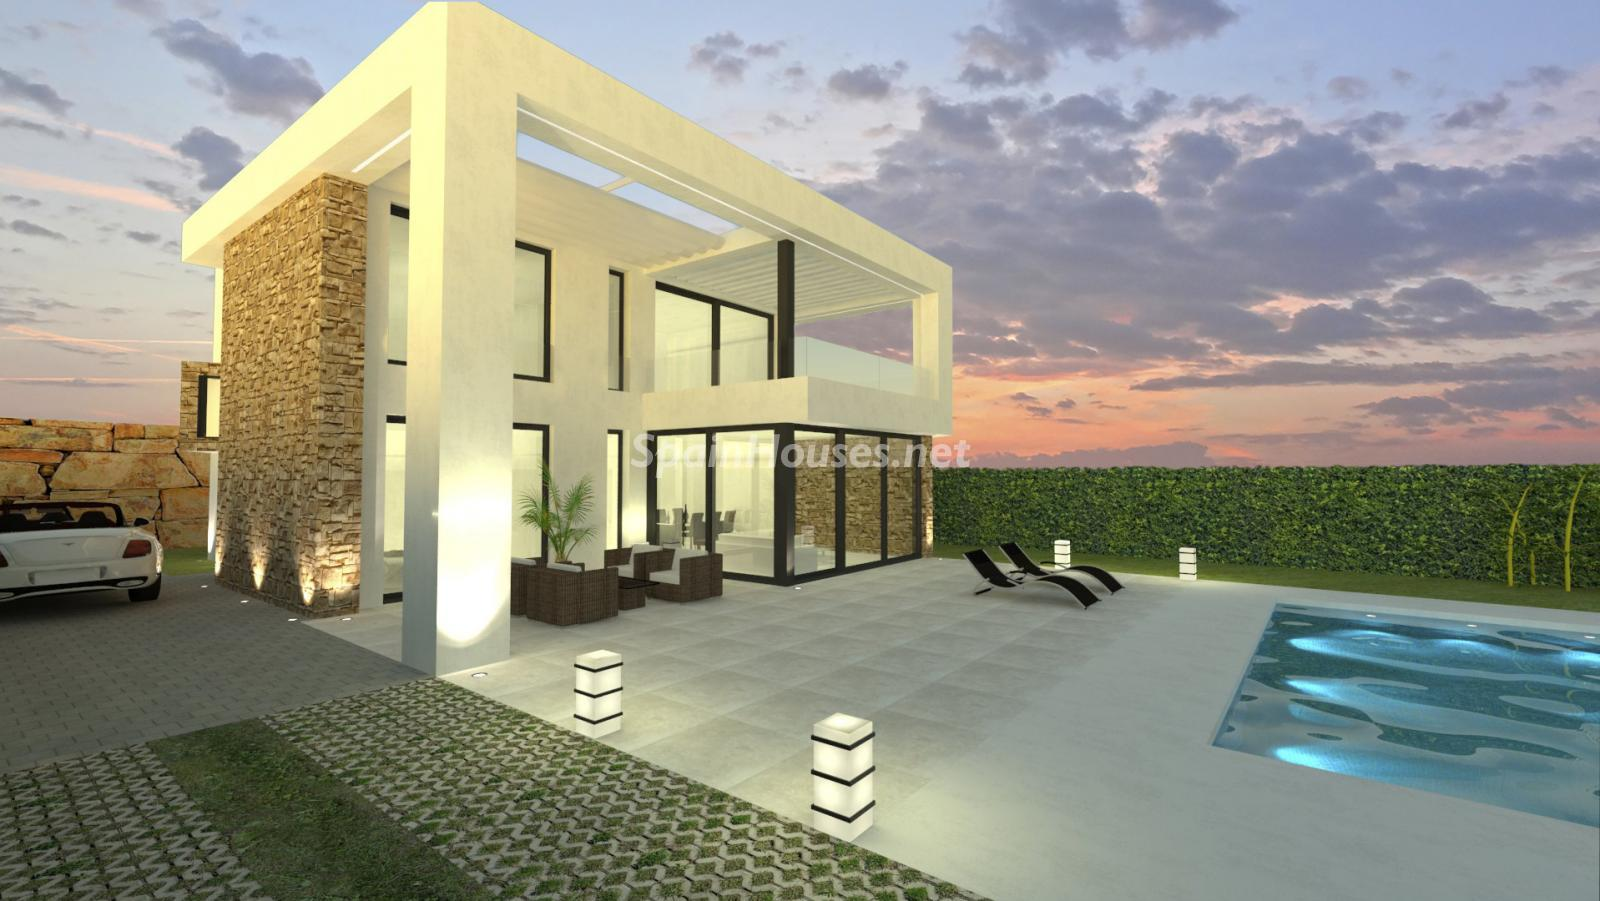 19. Buena Vista Hills - Buena Vista Hills, 26 Modern Villas with Panoramic Sea Views in Mijas, Costa del Sol